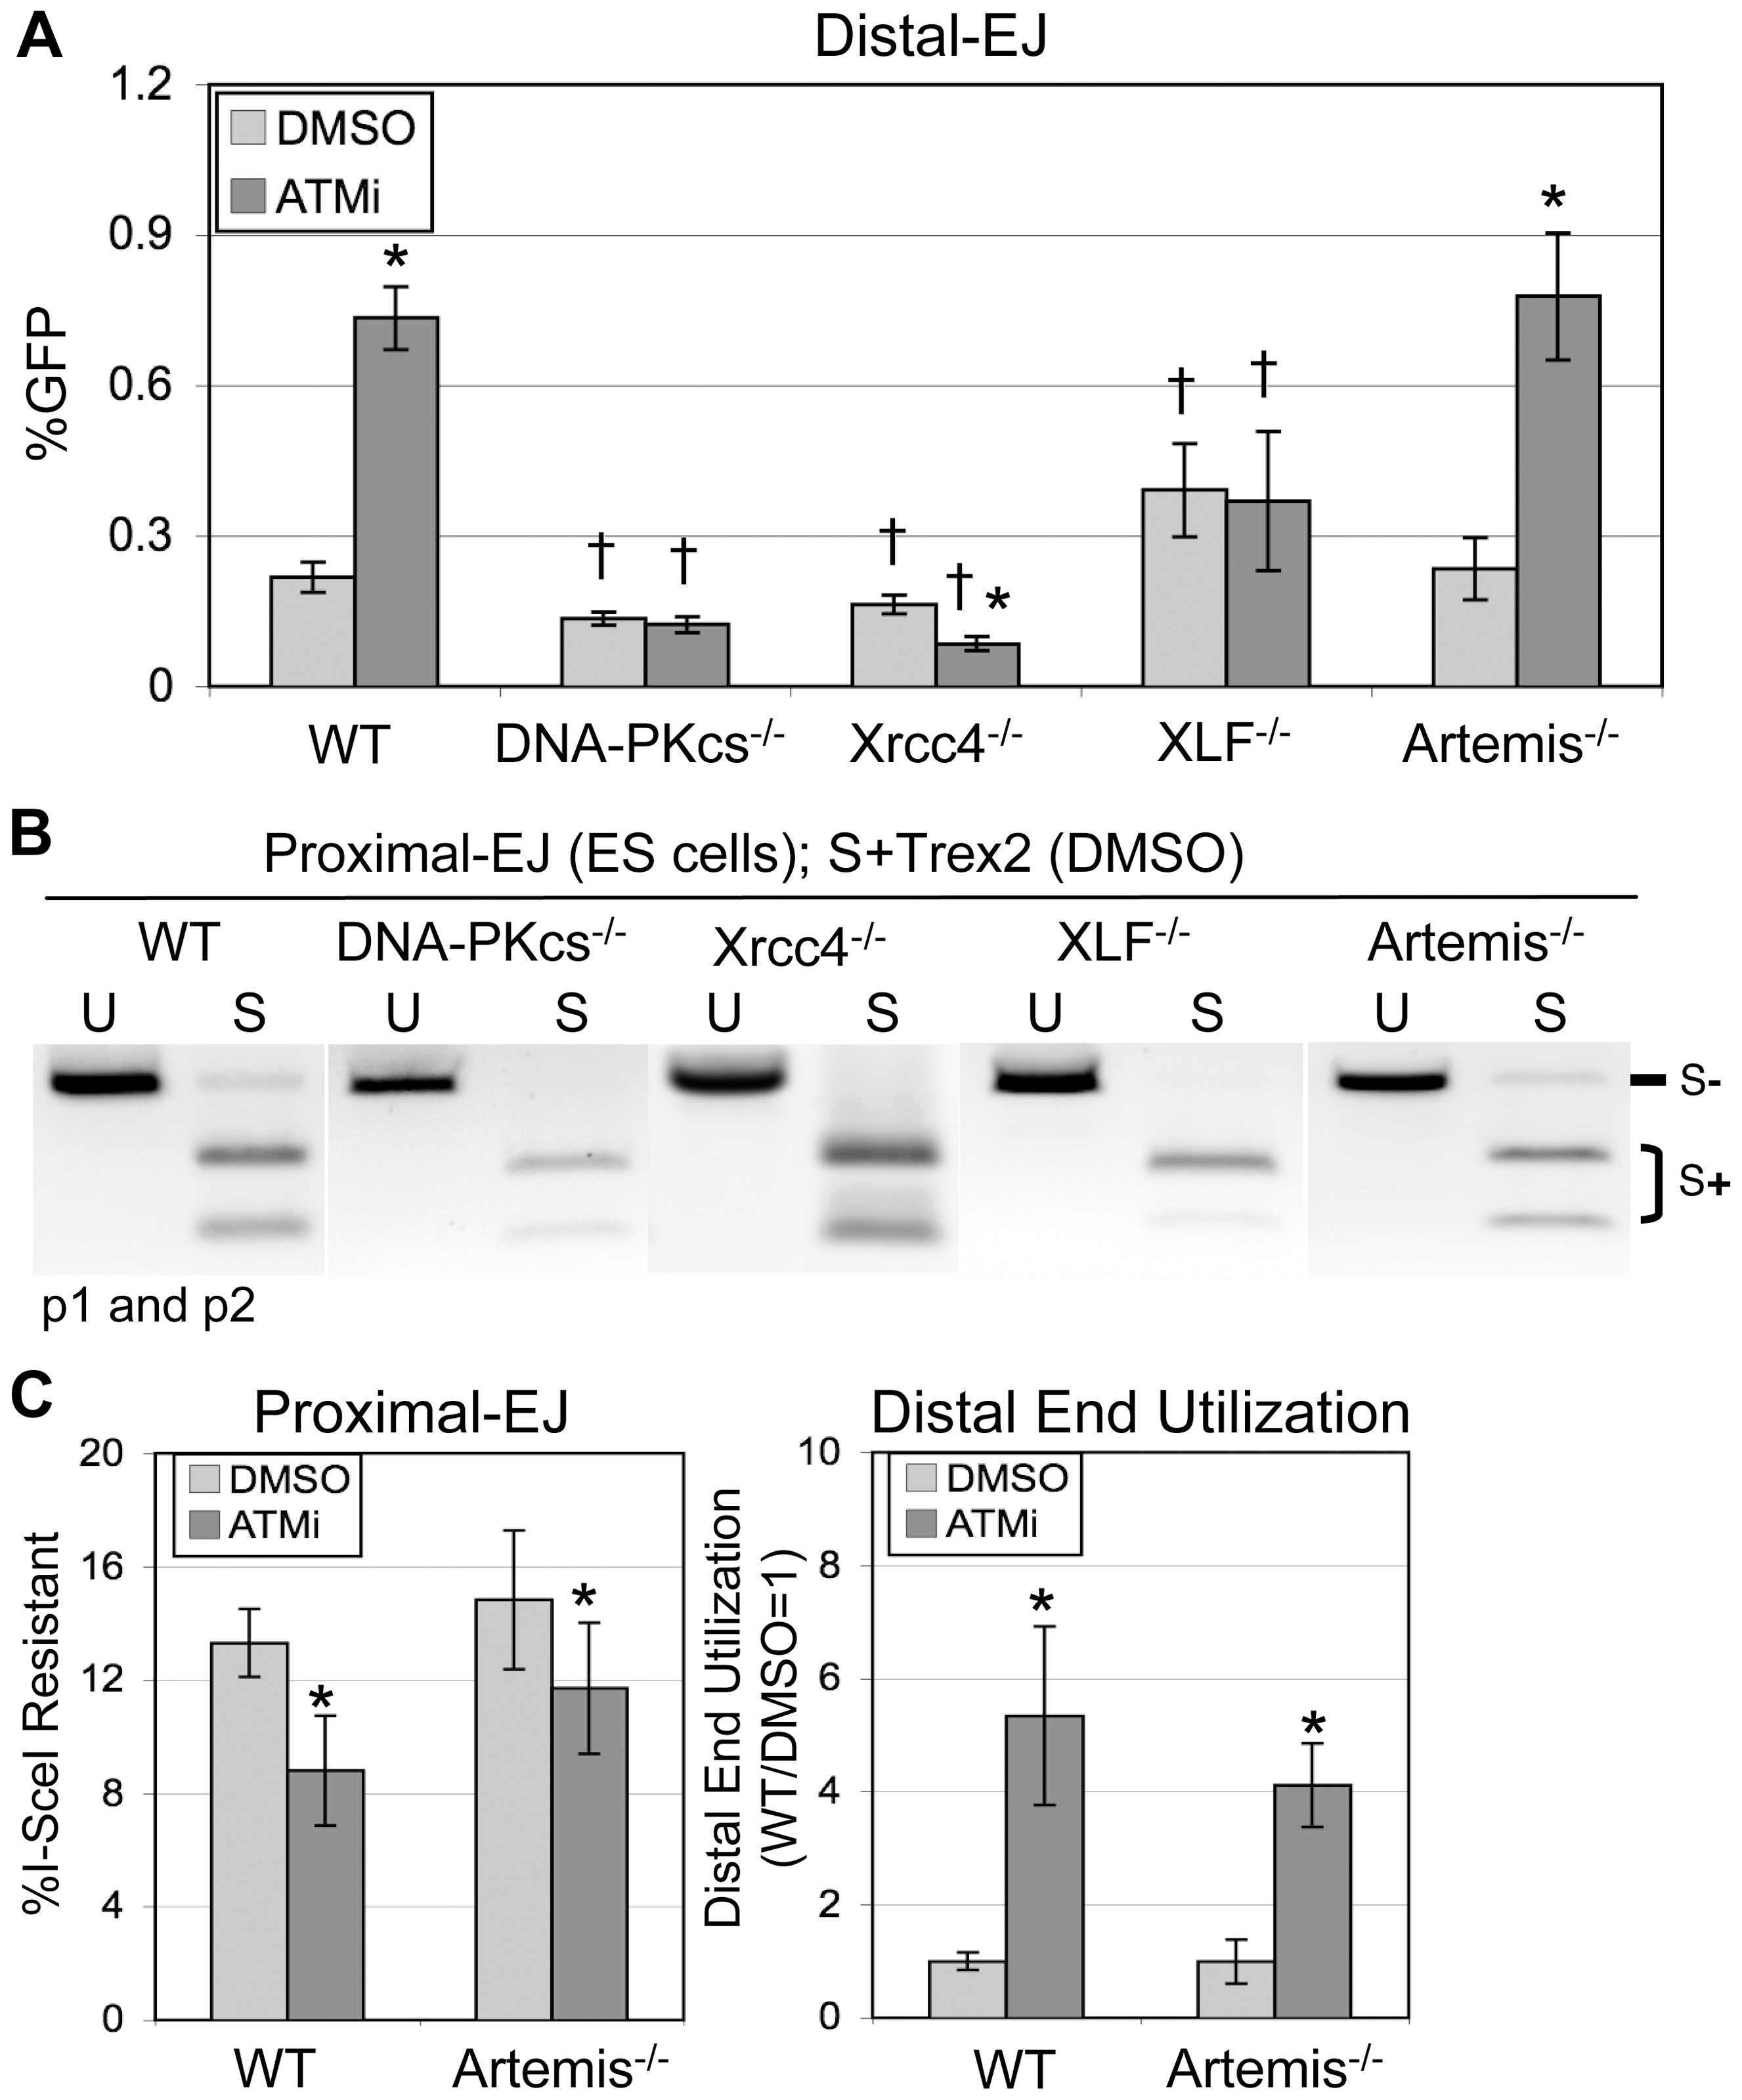 The elevation in Distal-EJ caused by ATMi is dependent on DNA-PKcs, Xrcc4, and XLF, but not Artemis.